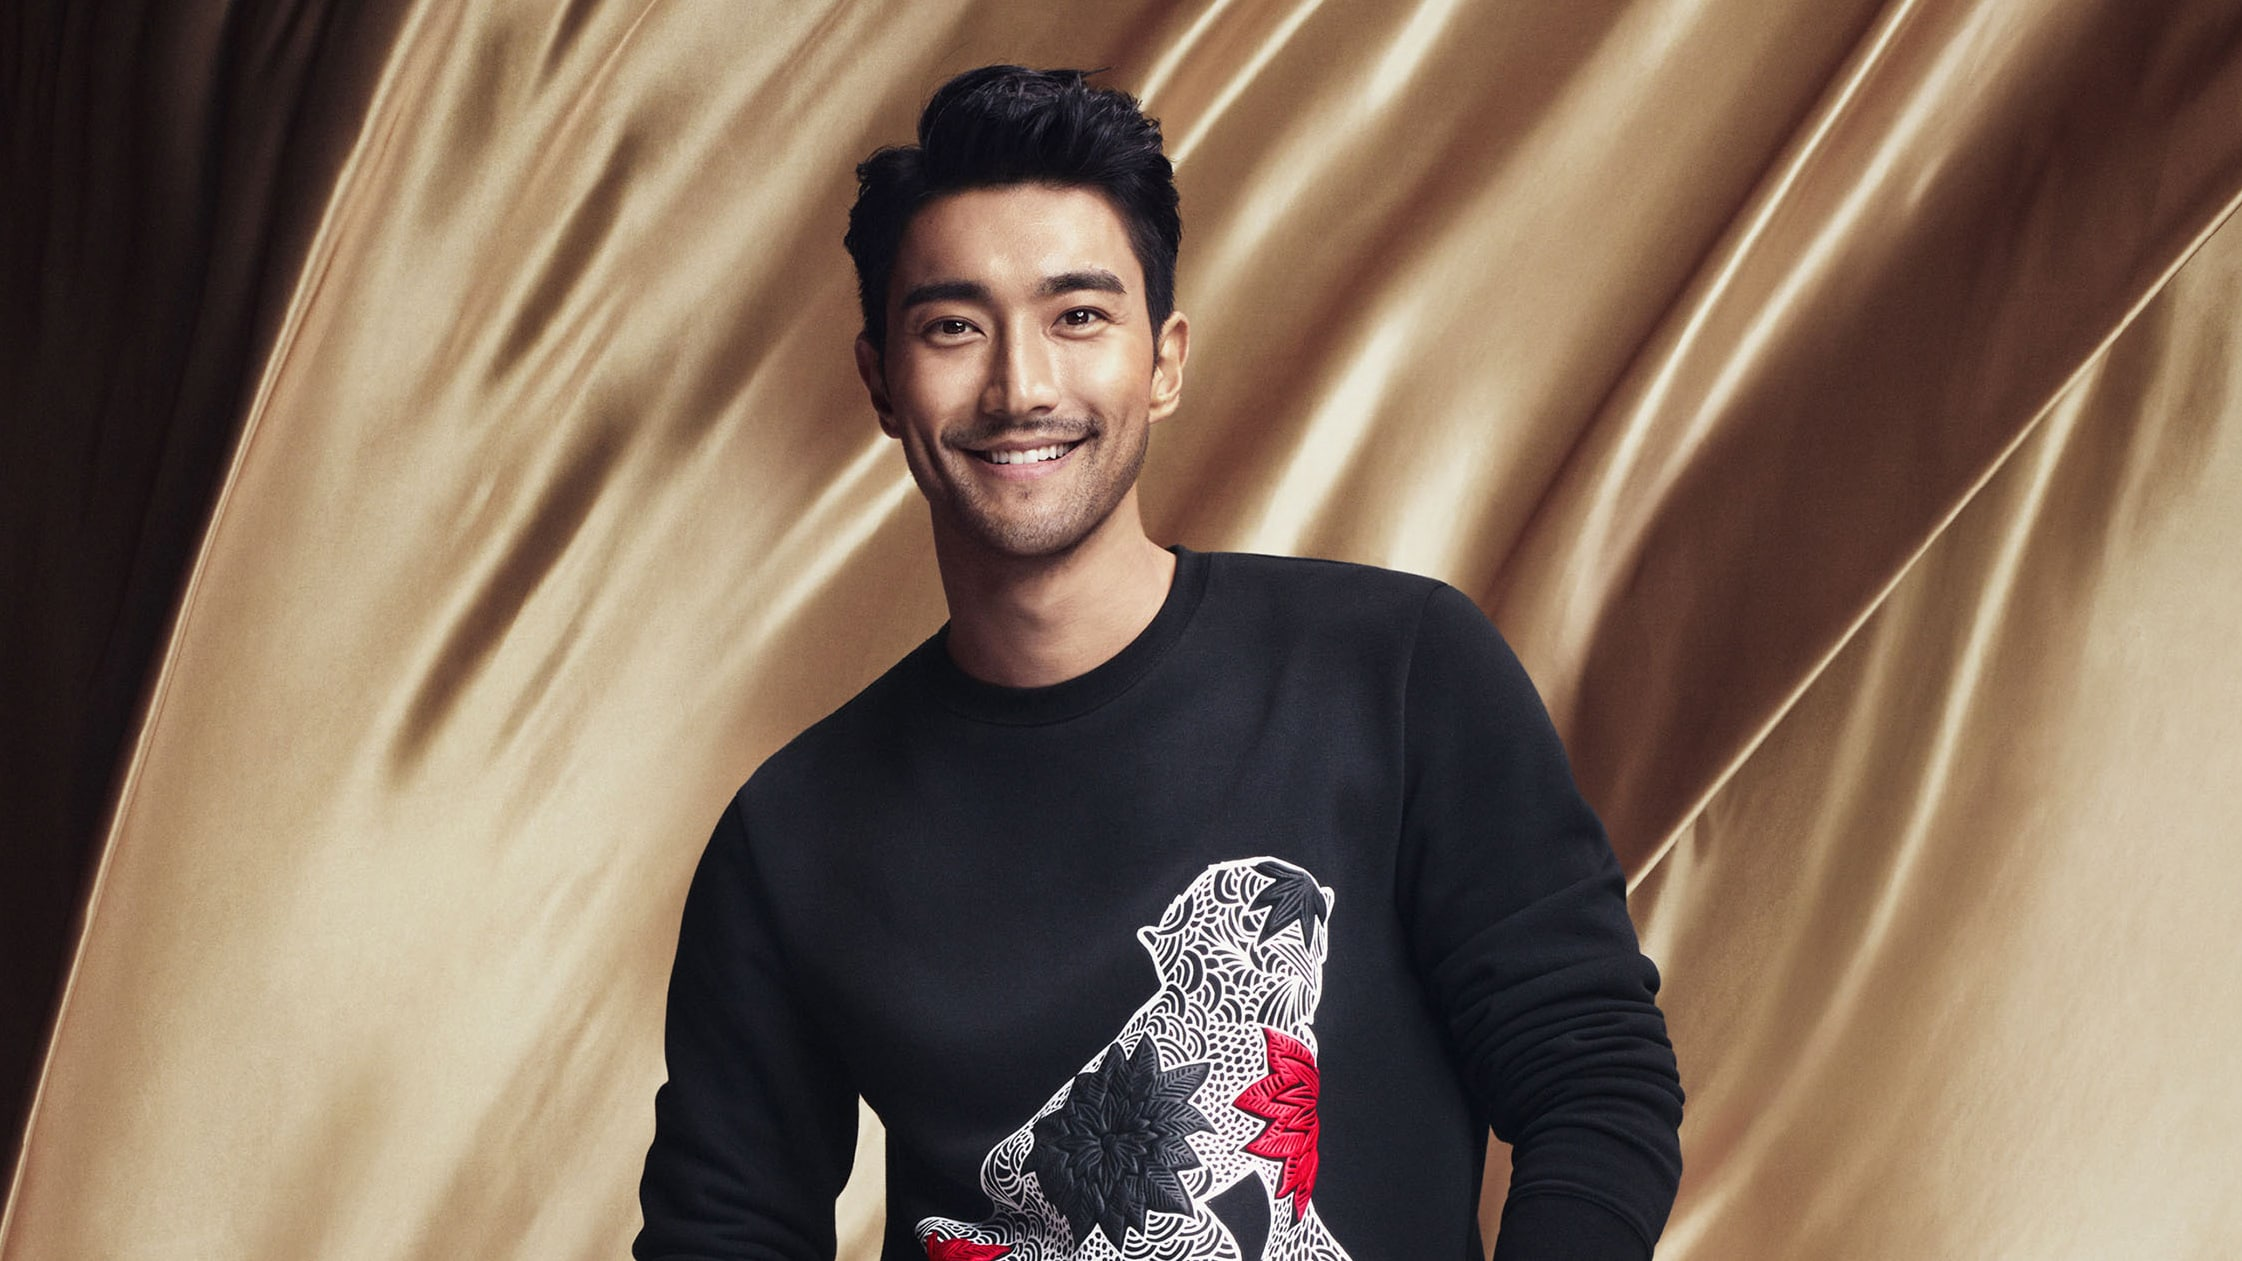 Super Junior's Choi Siwon To Volunteer For UNICEF Campaign In Vietnam